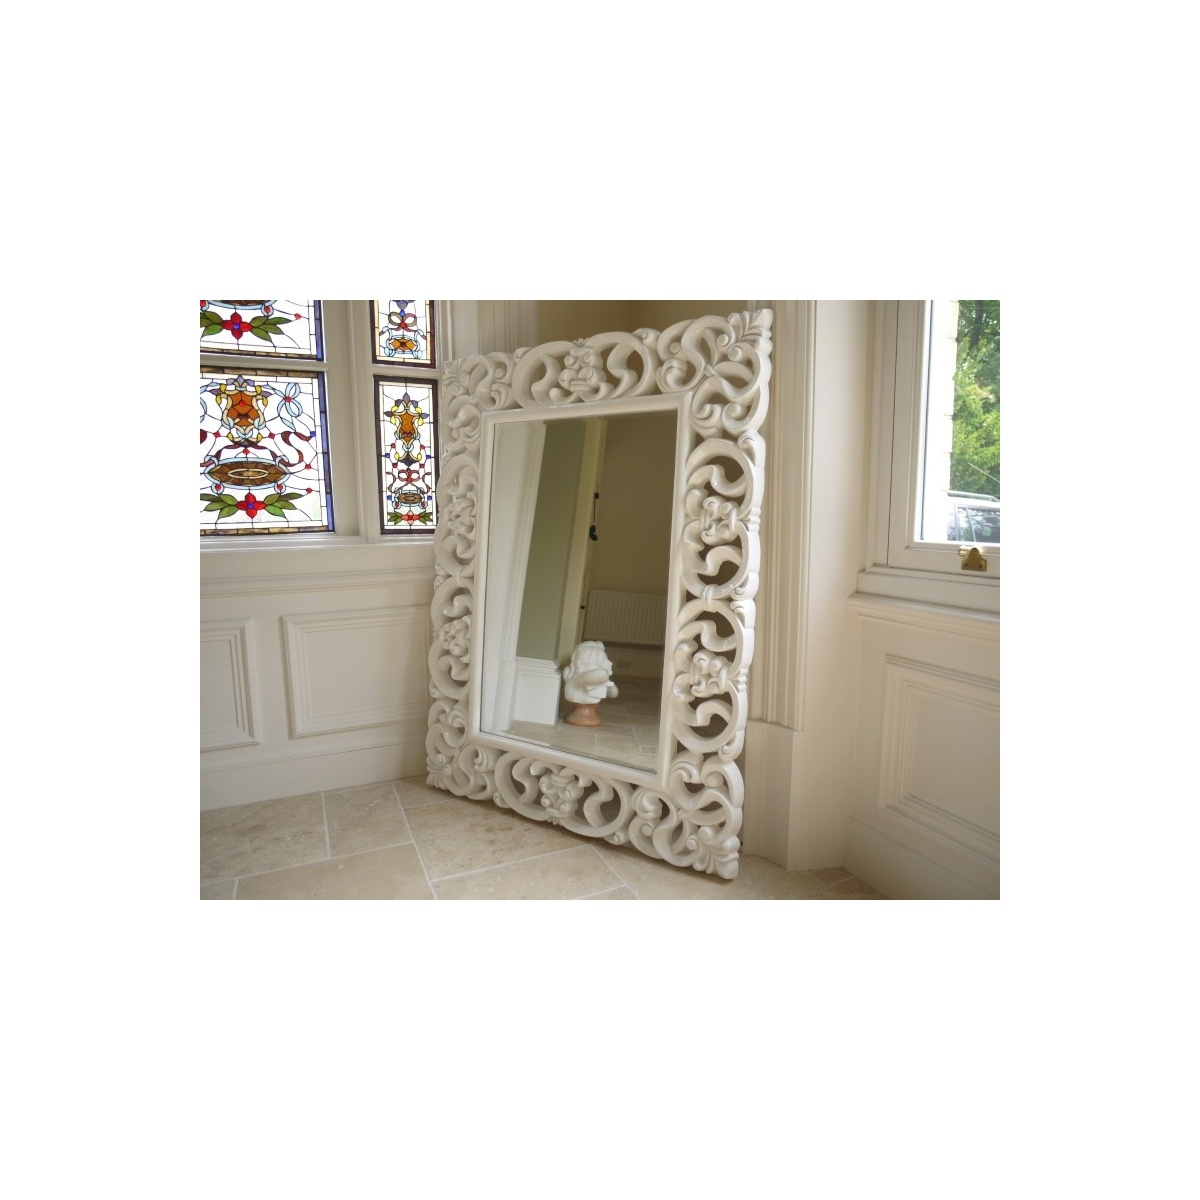 Buy Large French White Ornate Wall Mirror Swanky Interiors Pertaining To Large White Ornate Mirror (View 7 of 15)